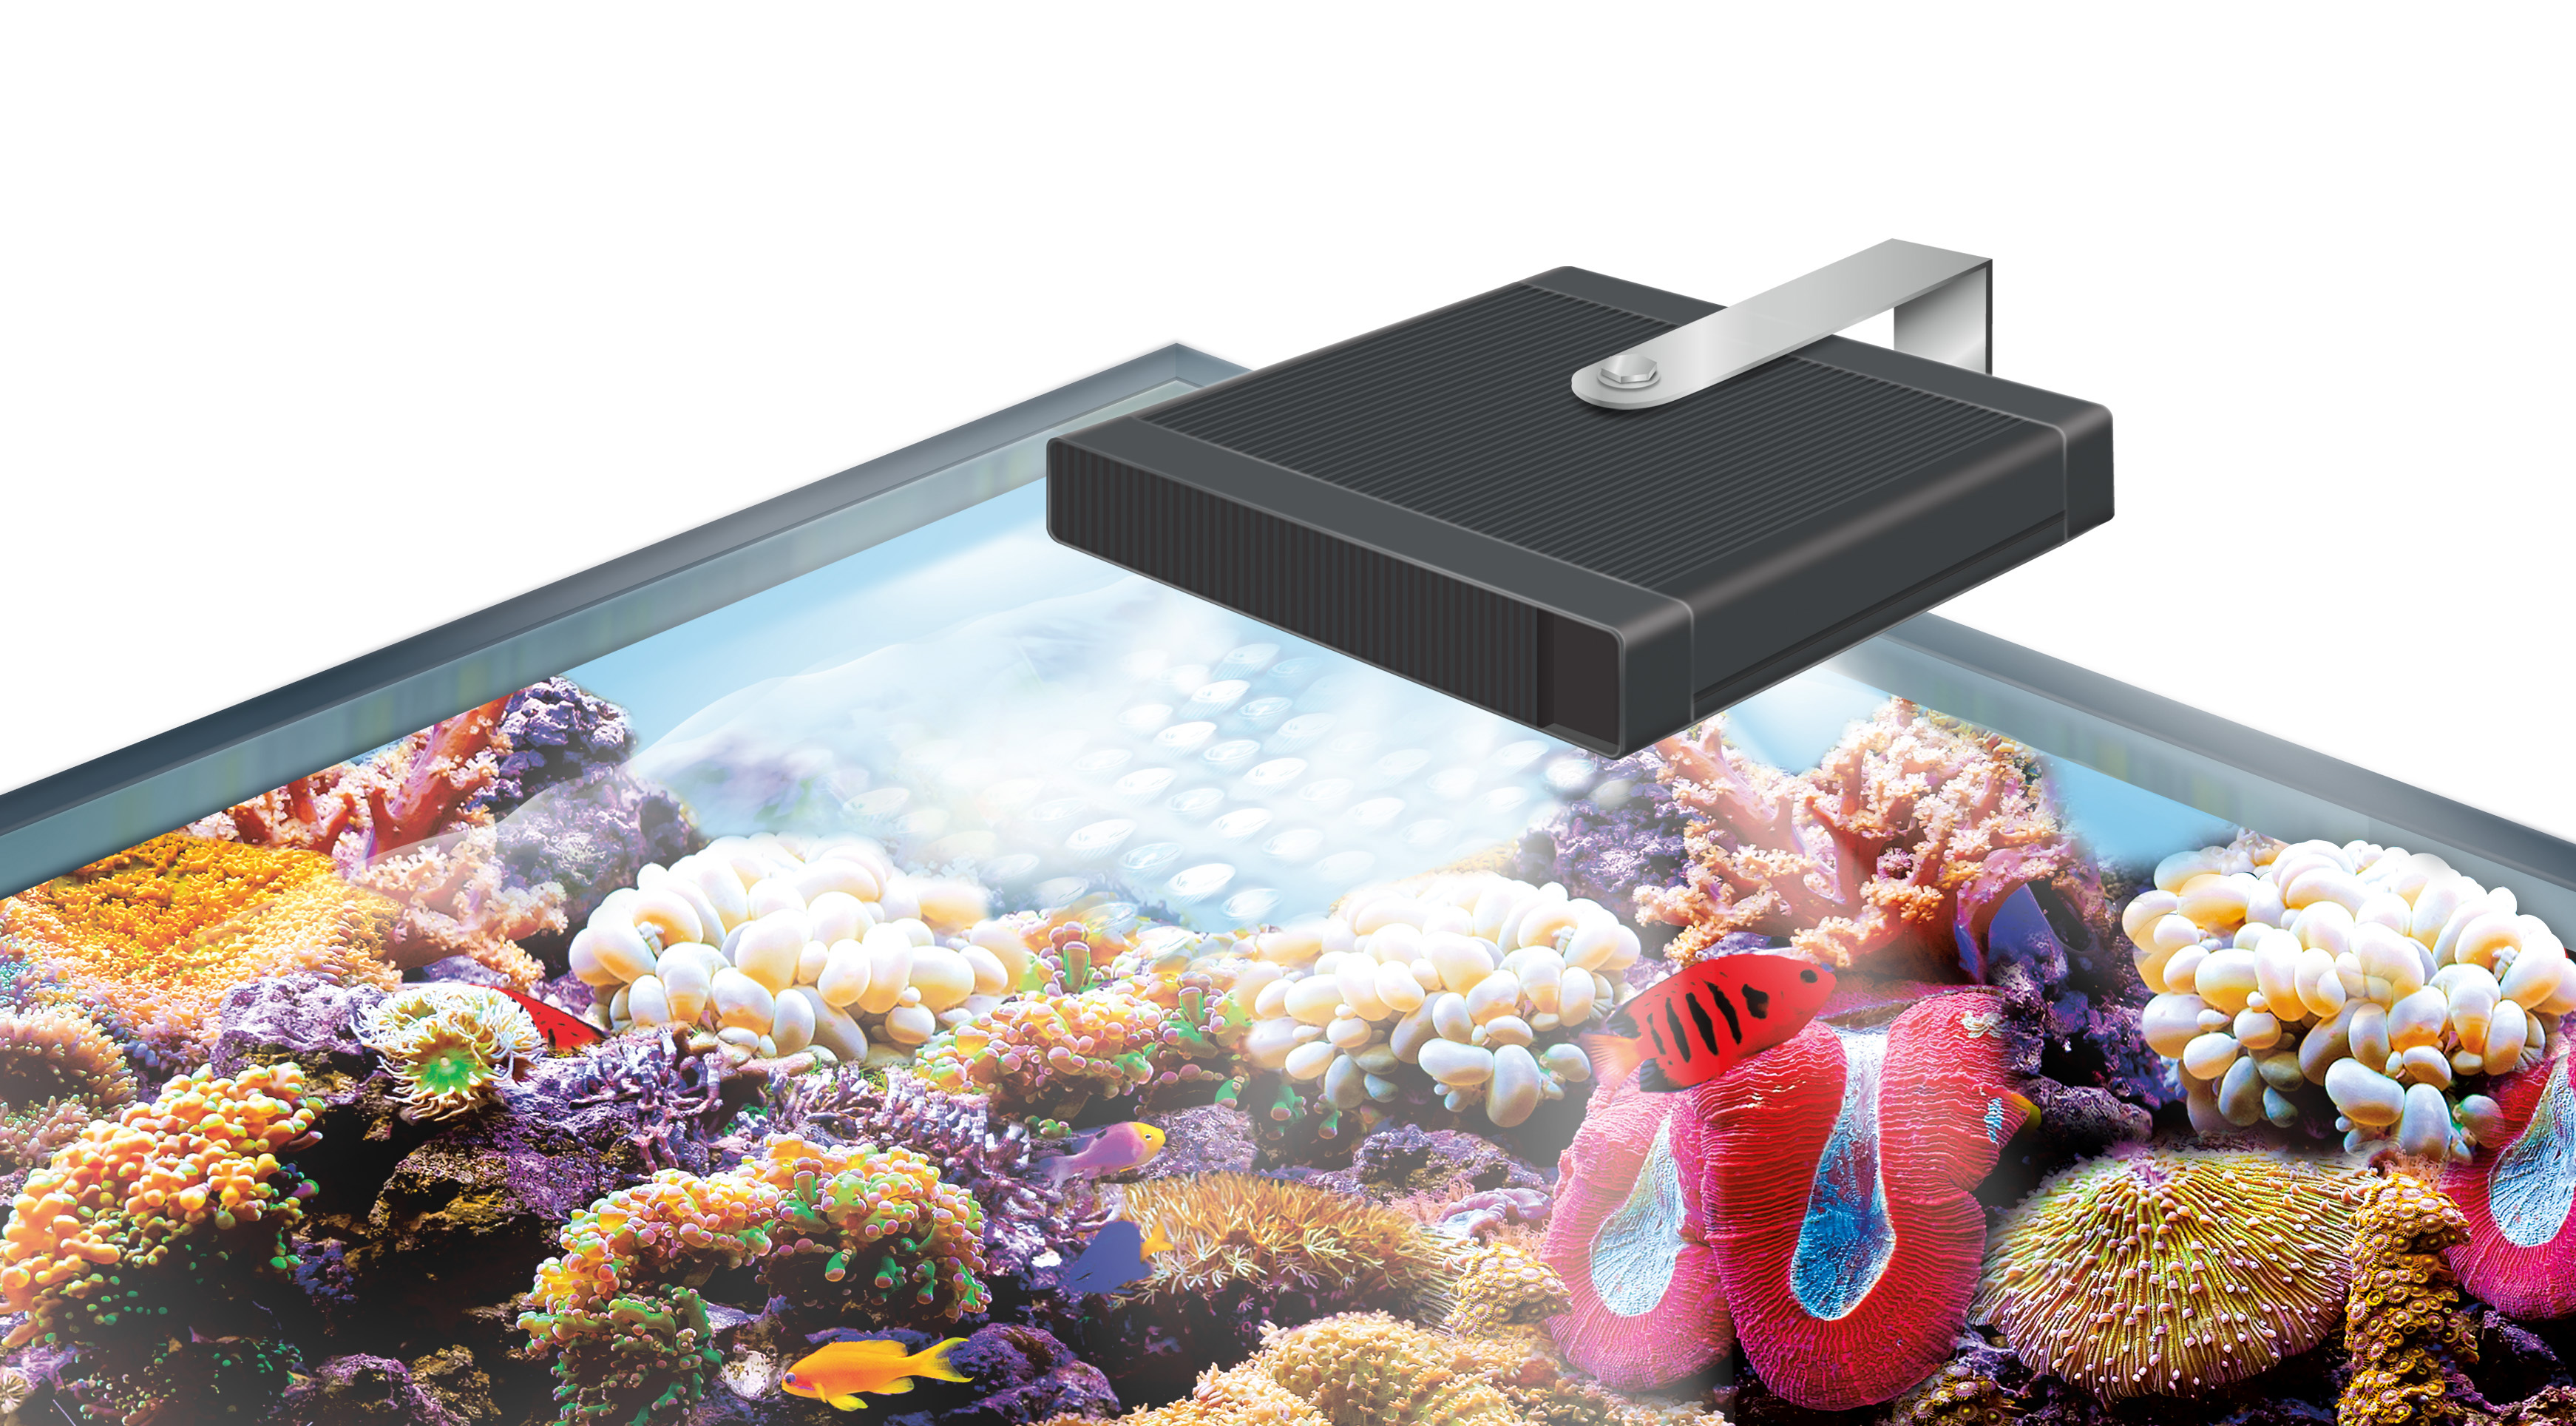 Nano led aquarium fish tank lighting - Got A Smaller Marine Tank We Have The Solution The Nano Marine And Reef Performance Led Lamp